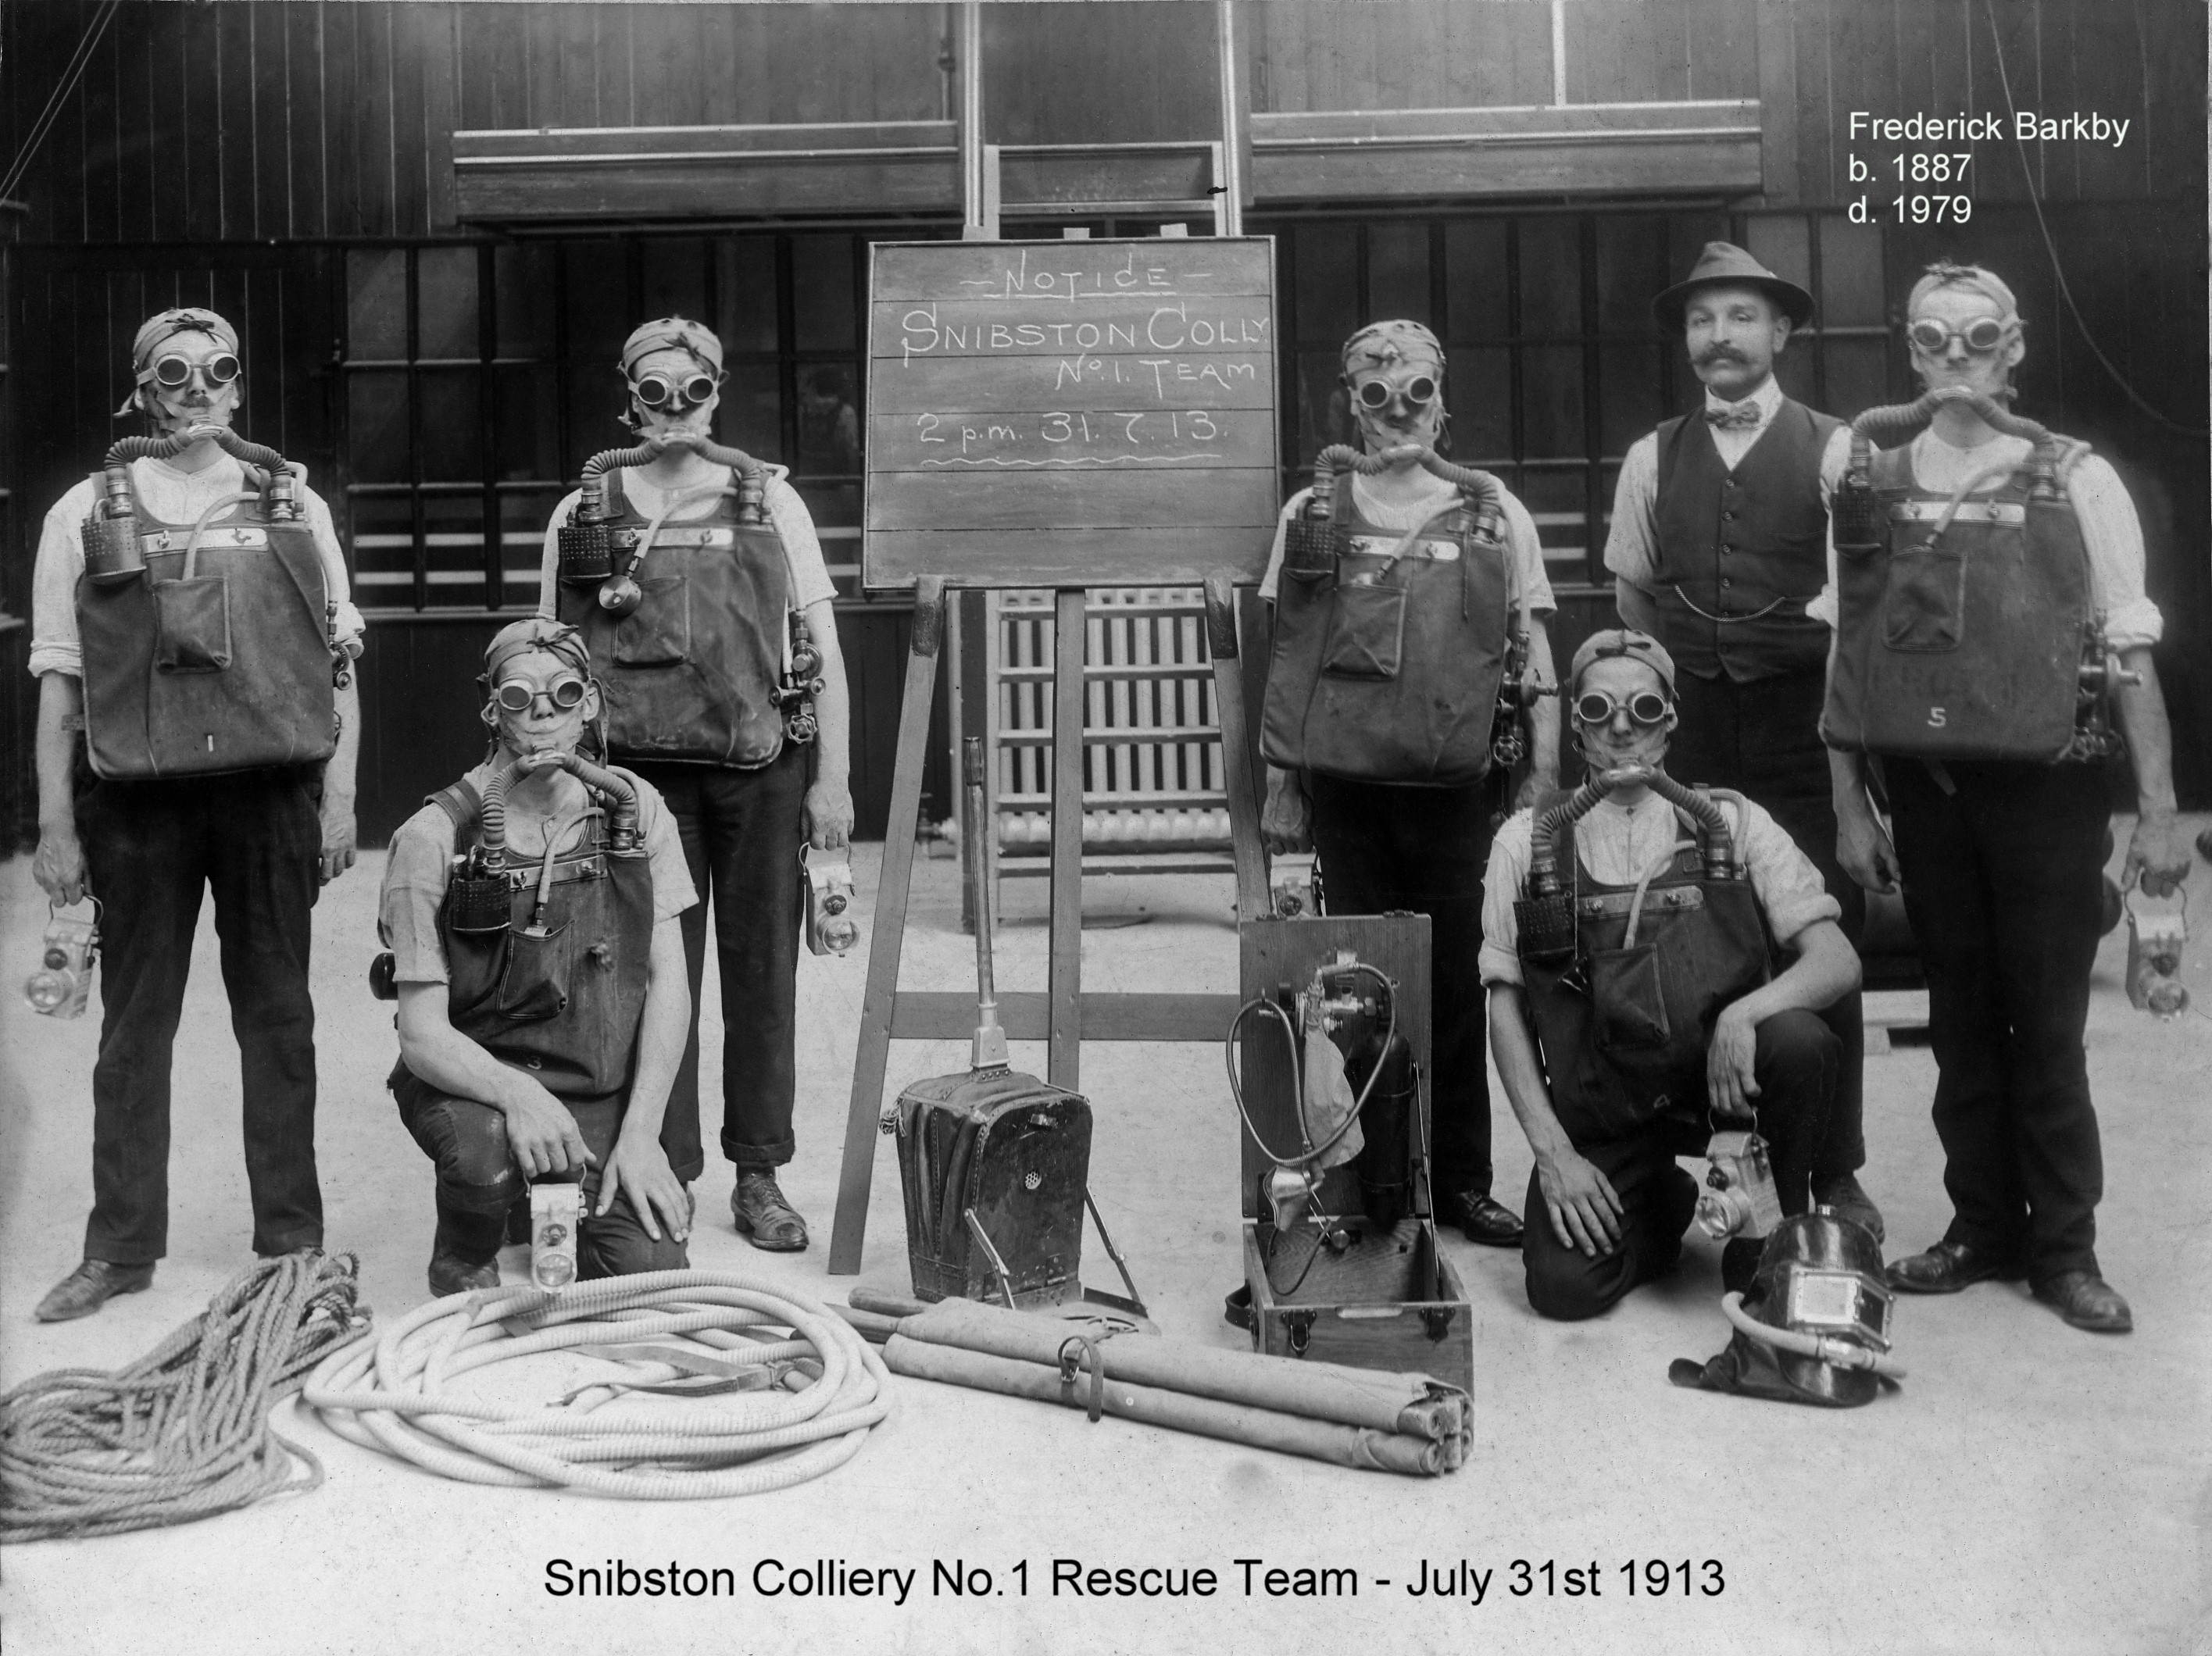 Snibston Colliery Rescue Team 1913